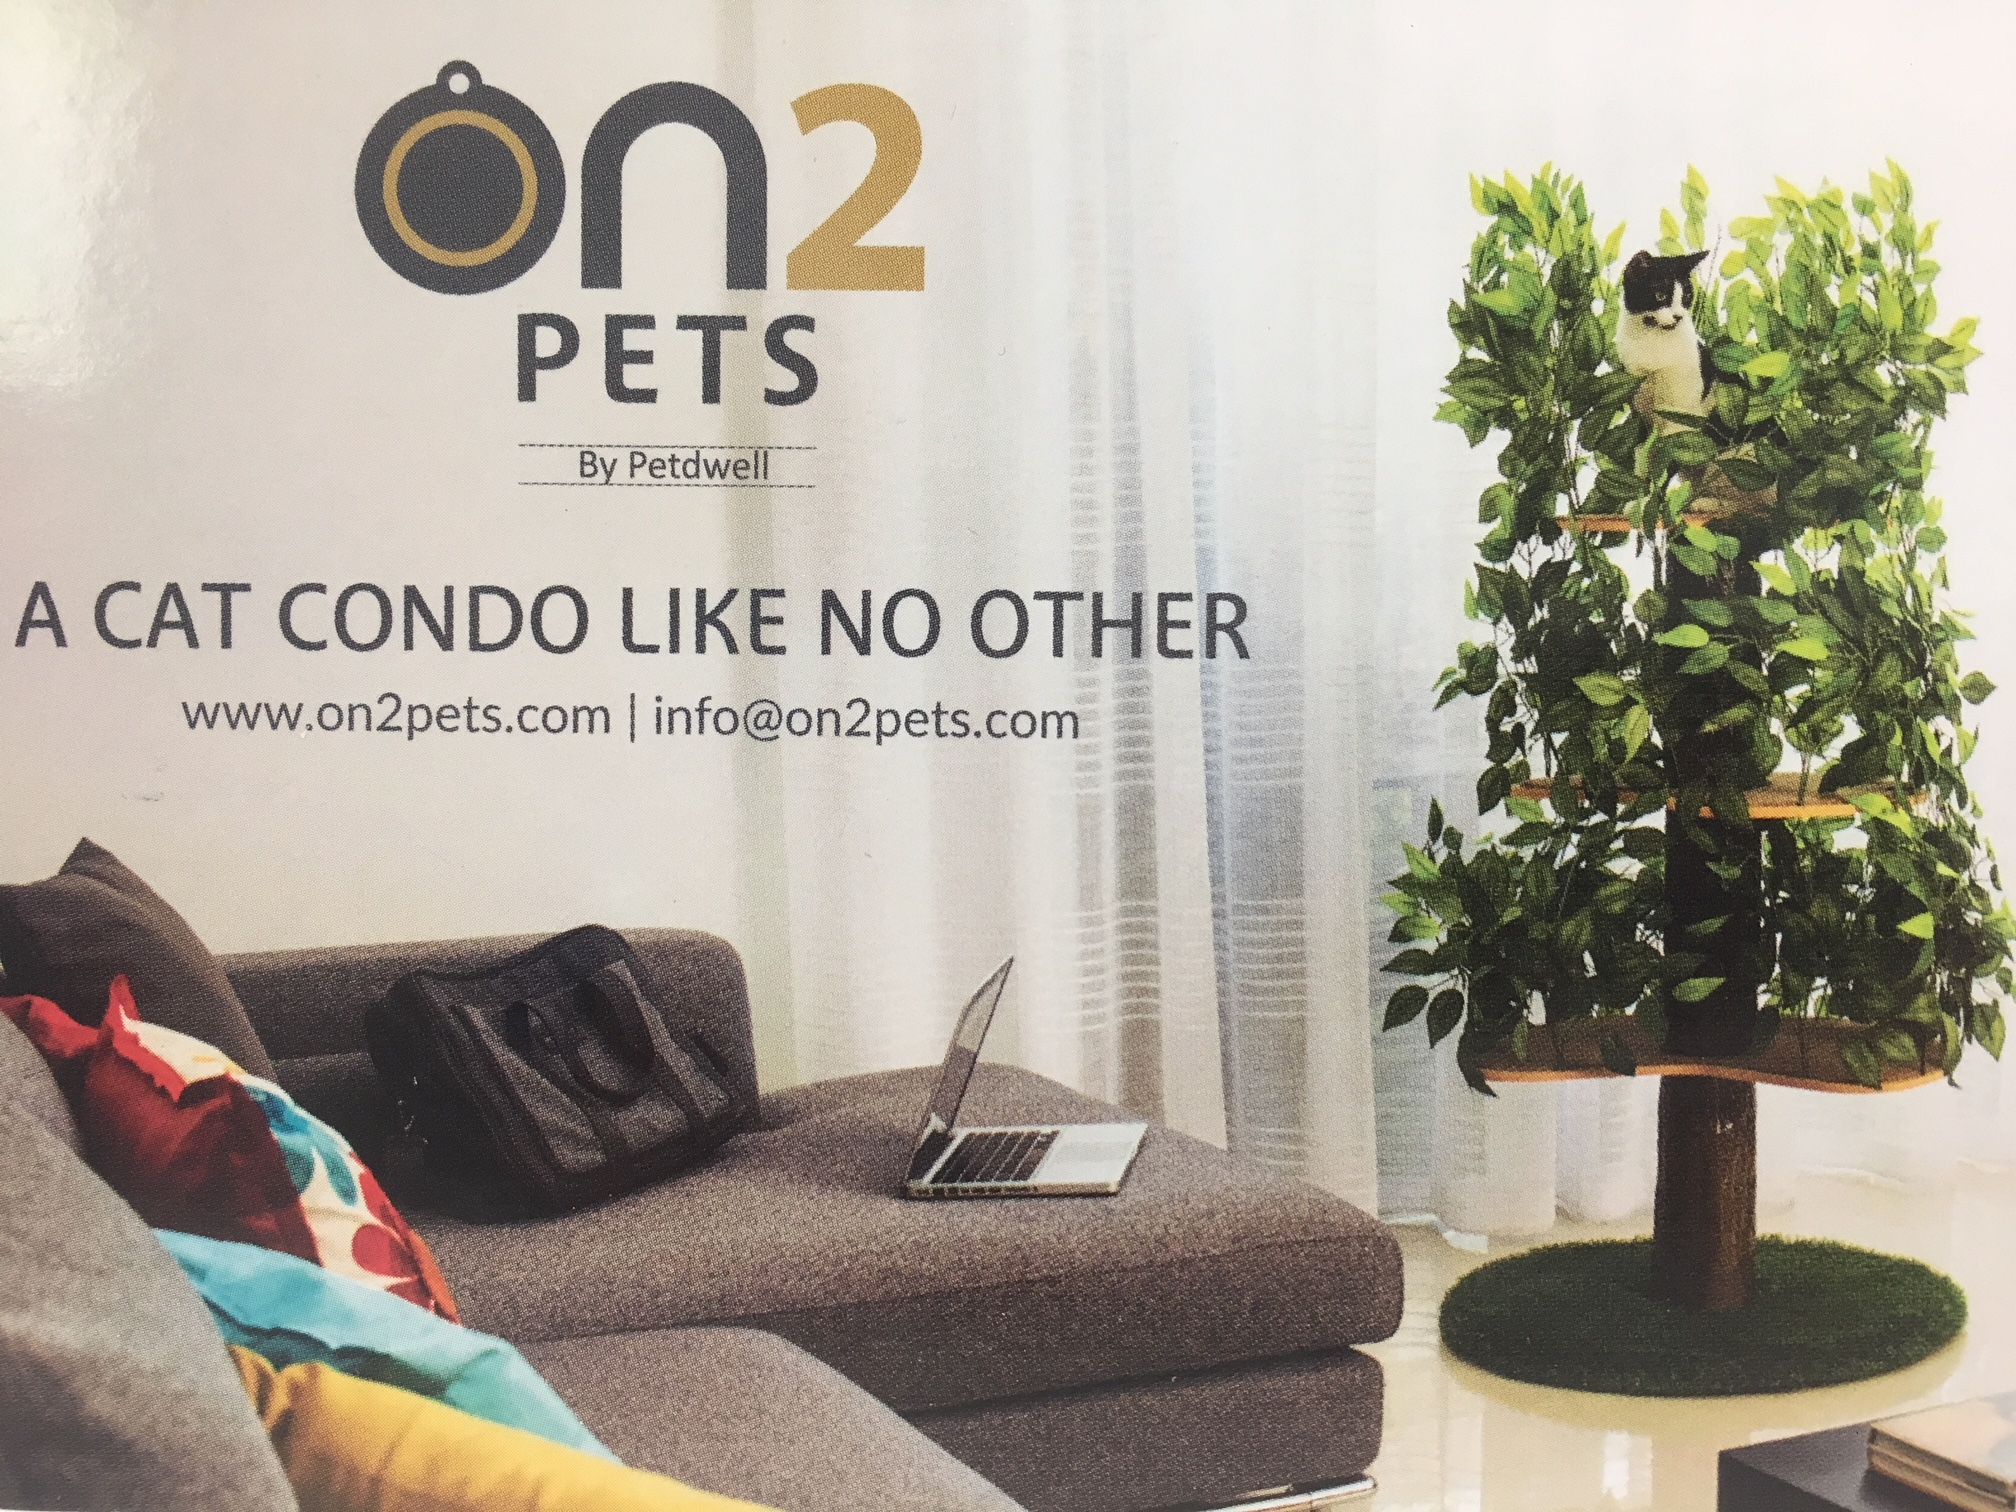 ON2 Pets by petdwell   a cat condo like no other.  info@on2pets.com